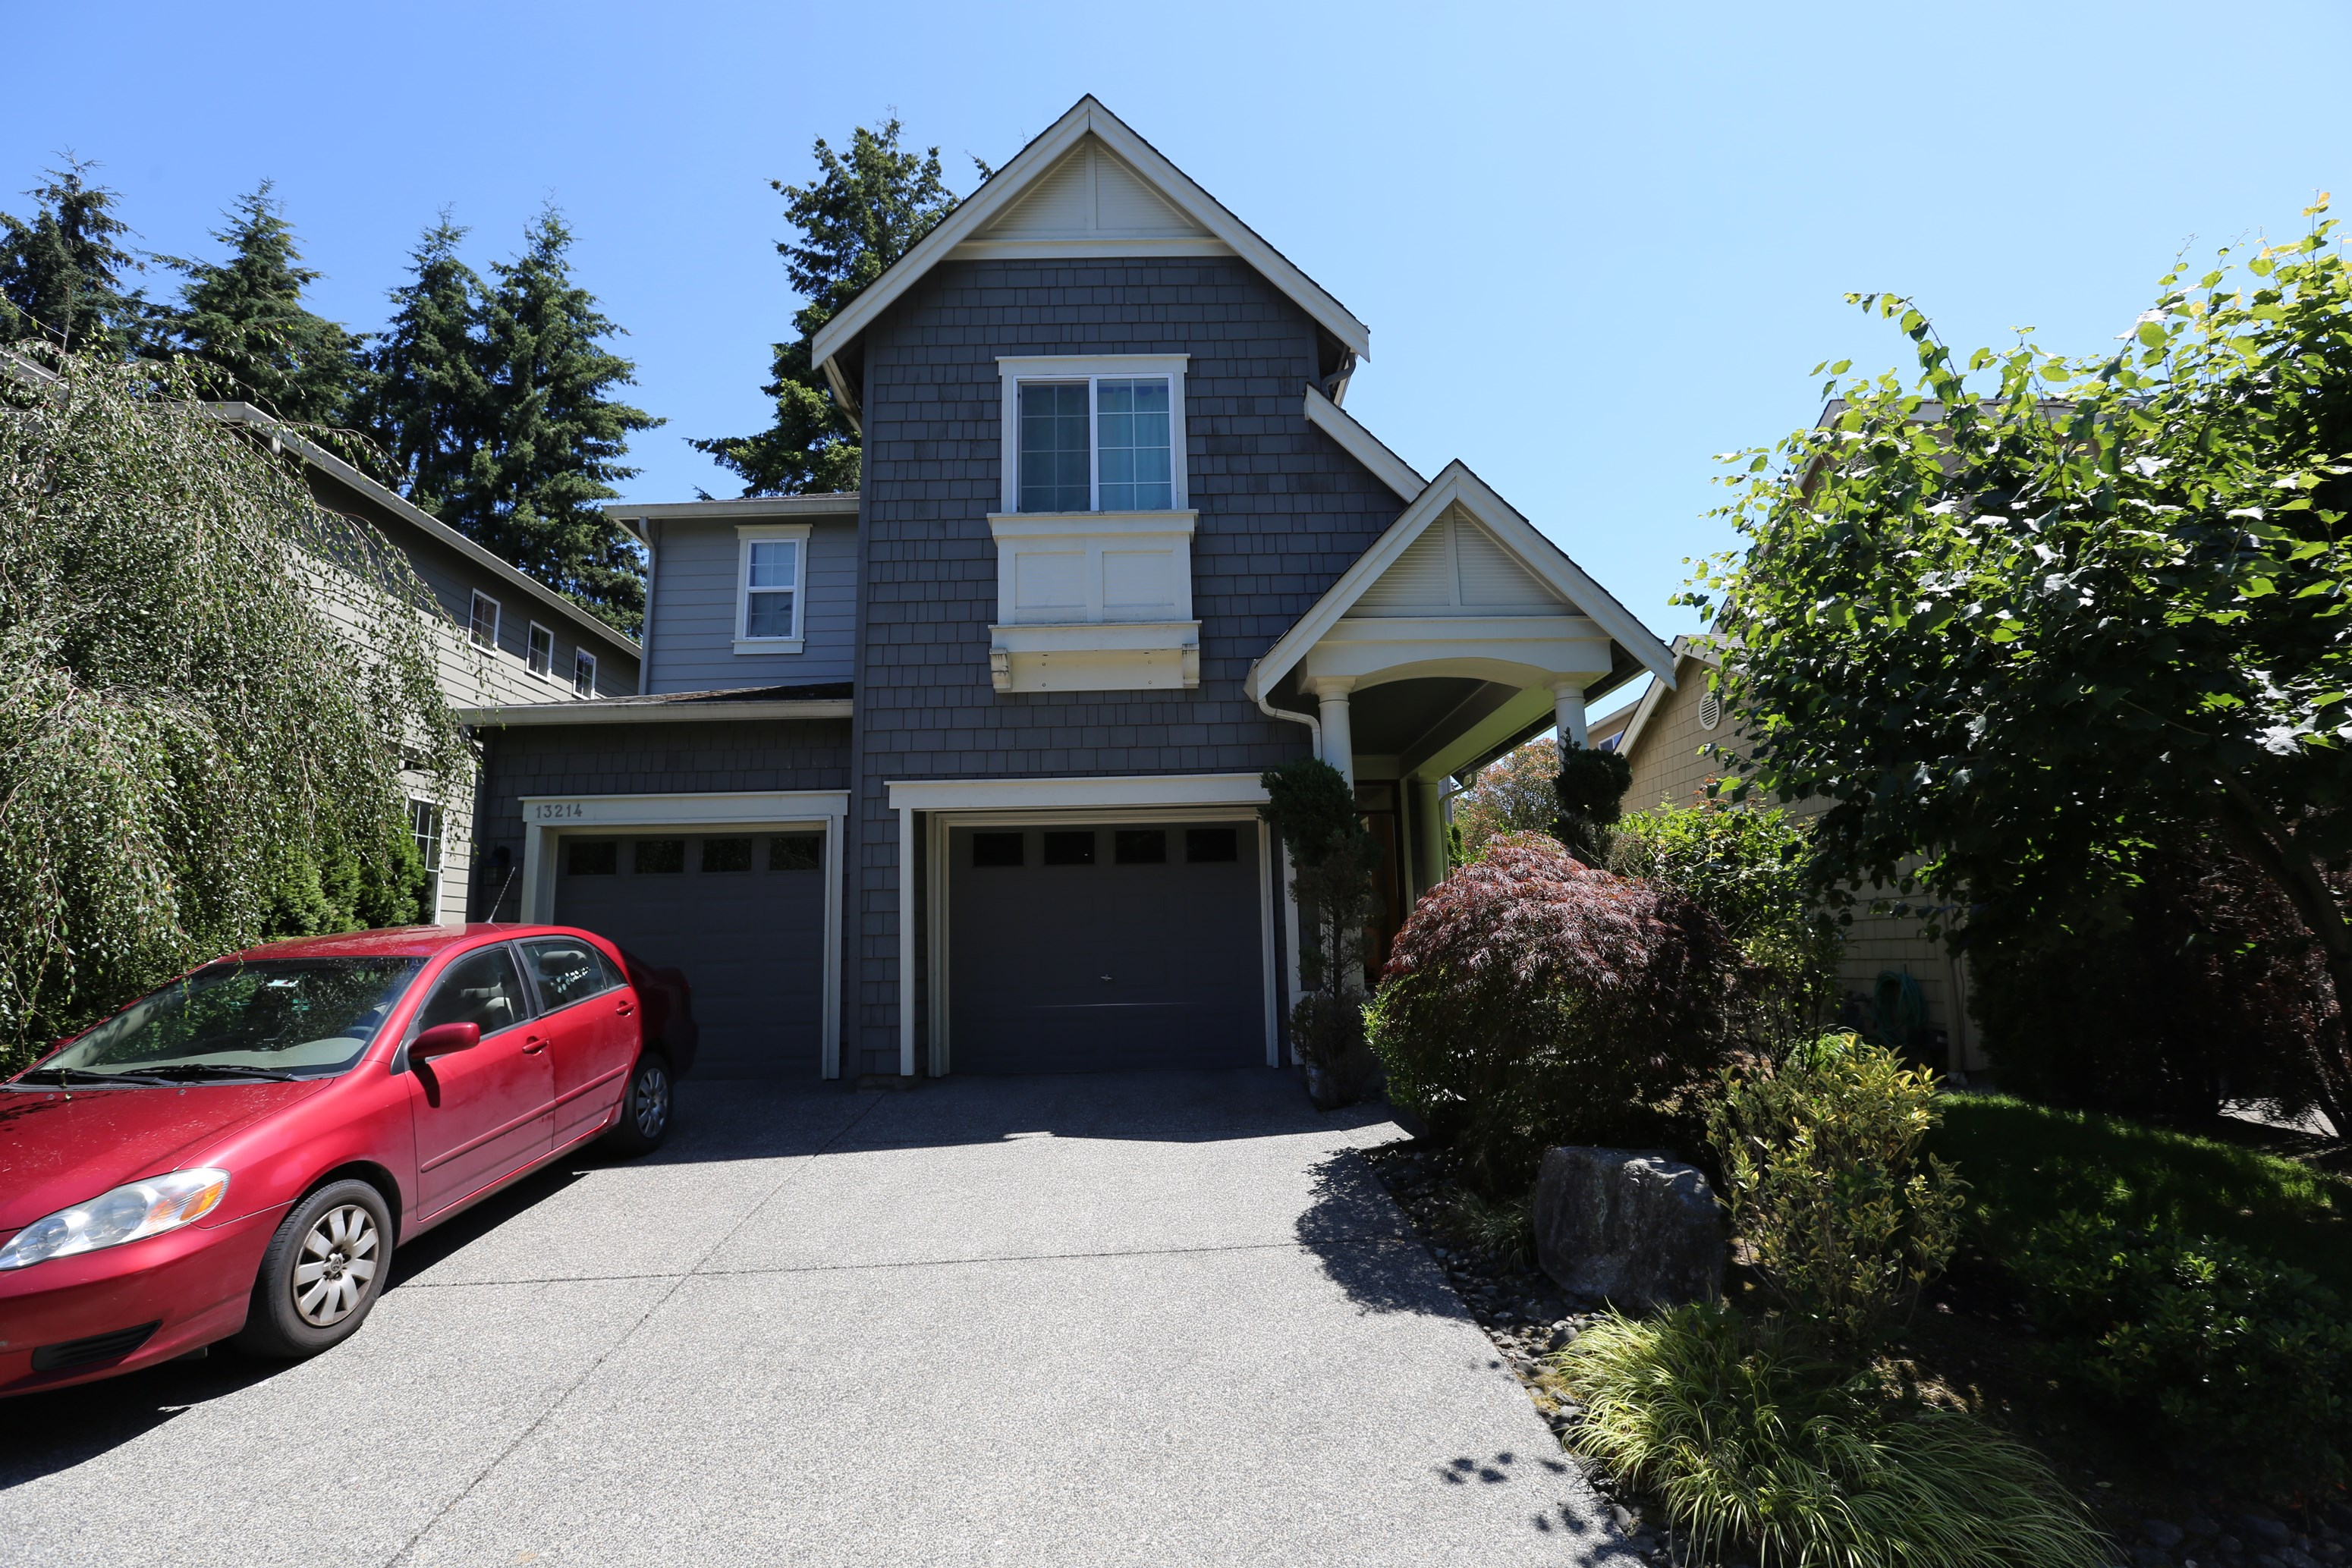 Kirkland, WA - Indian Events, Roommates, Day Care, Jobs, Local ...